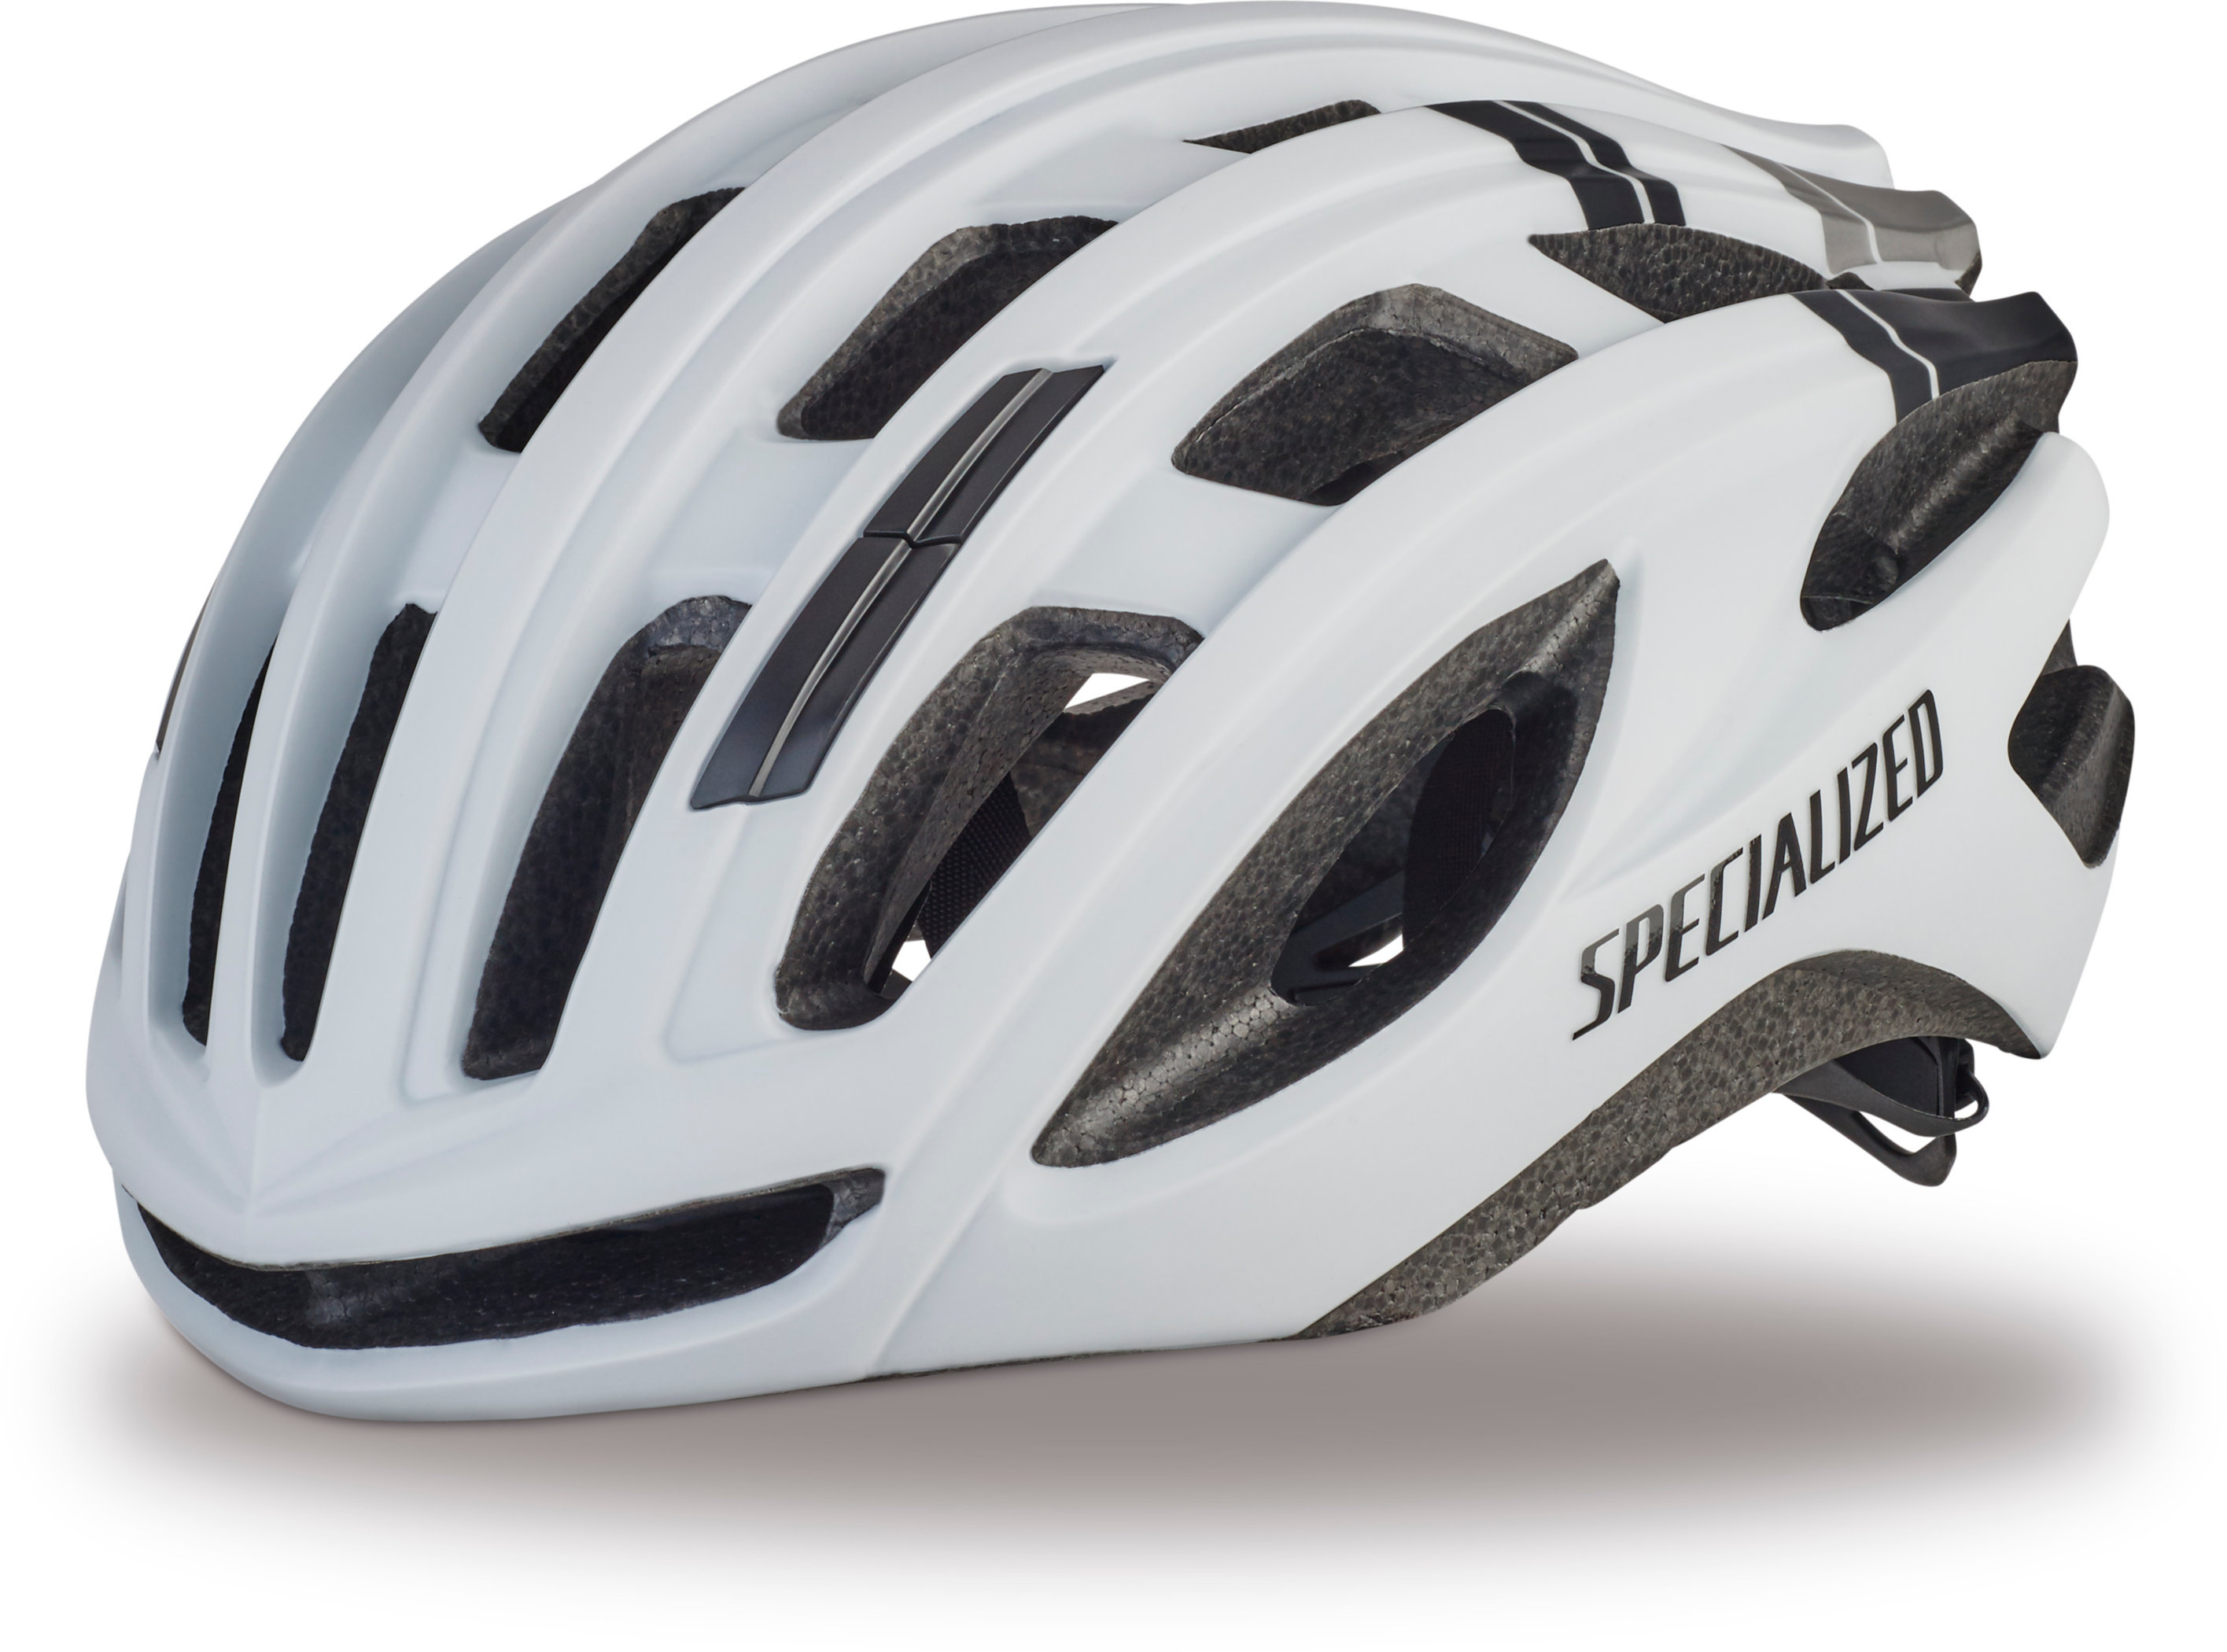 SPECIALIZED PROPERO 3 HLMT CE WHT M - Bike Zone